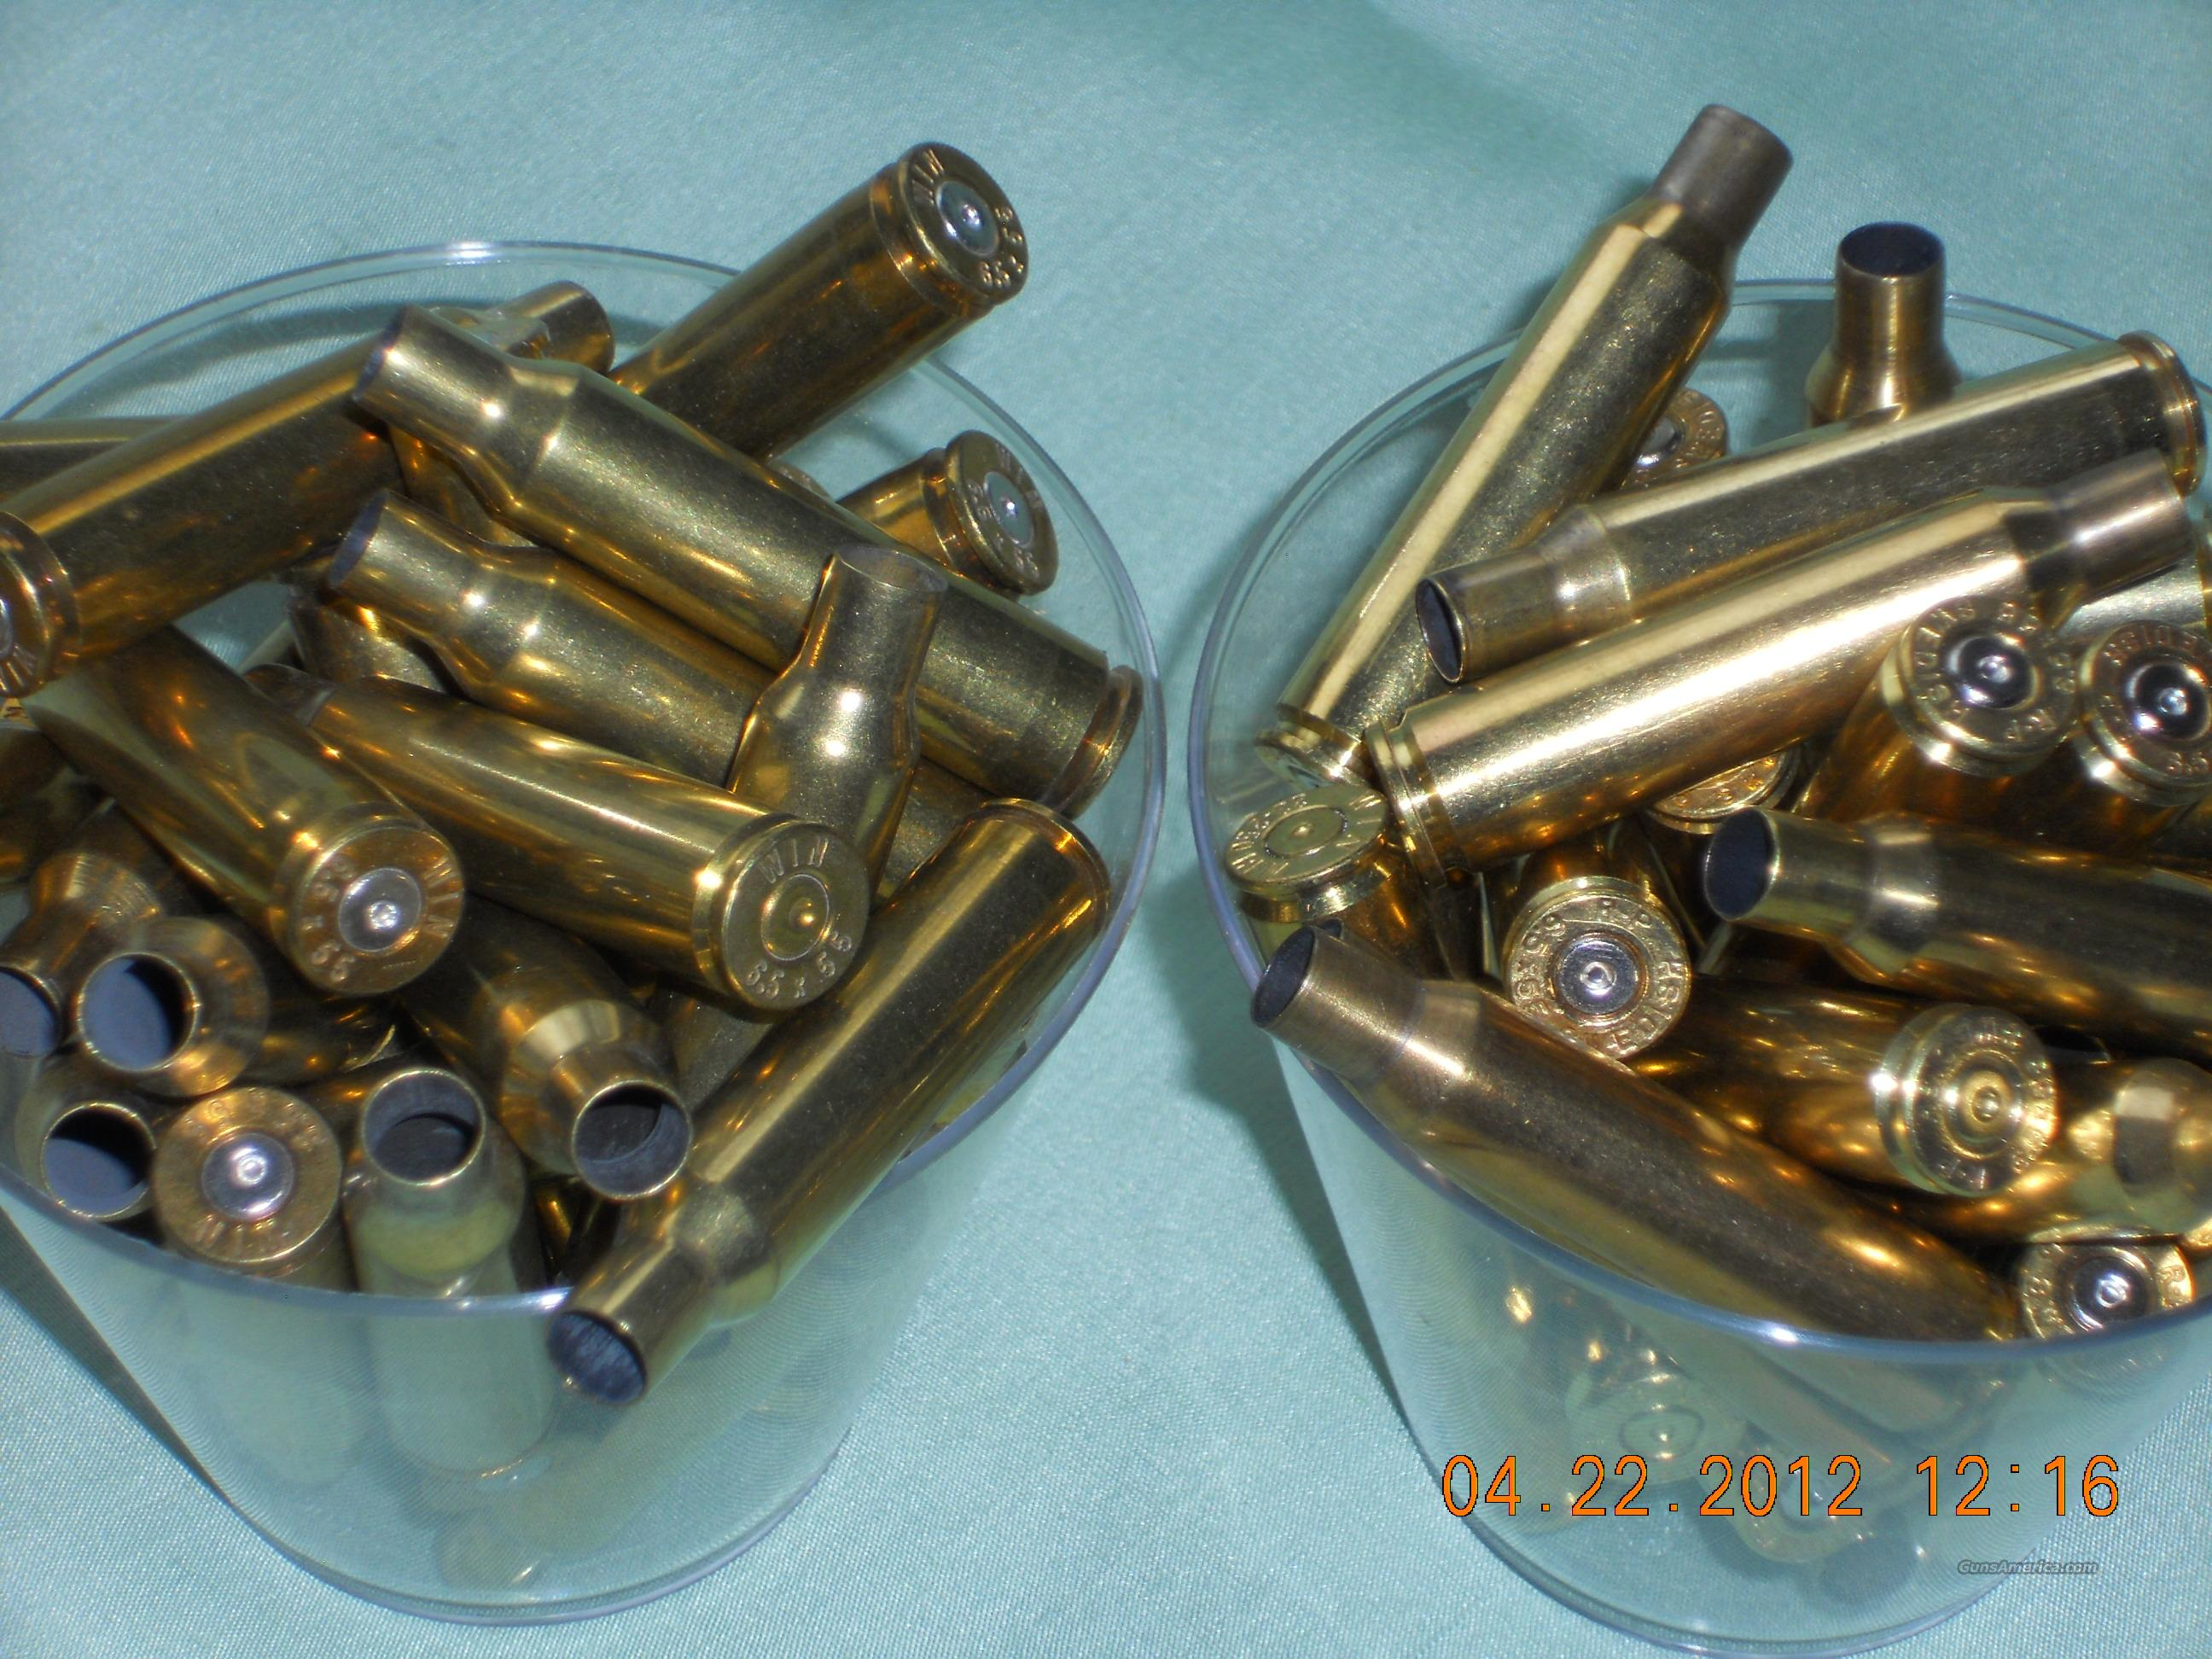 6.5 X55 SWEDISH  MAUSER BRASS QTY; 100  Non-Guns > Reloading > Components > Brass